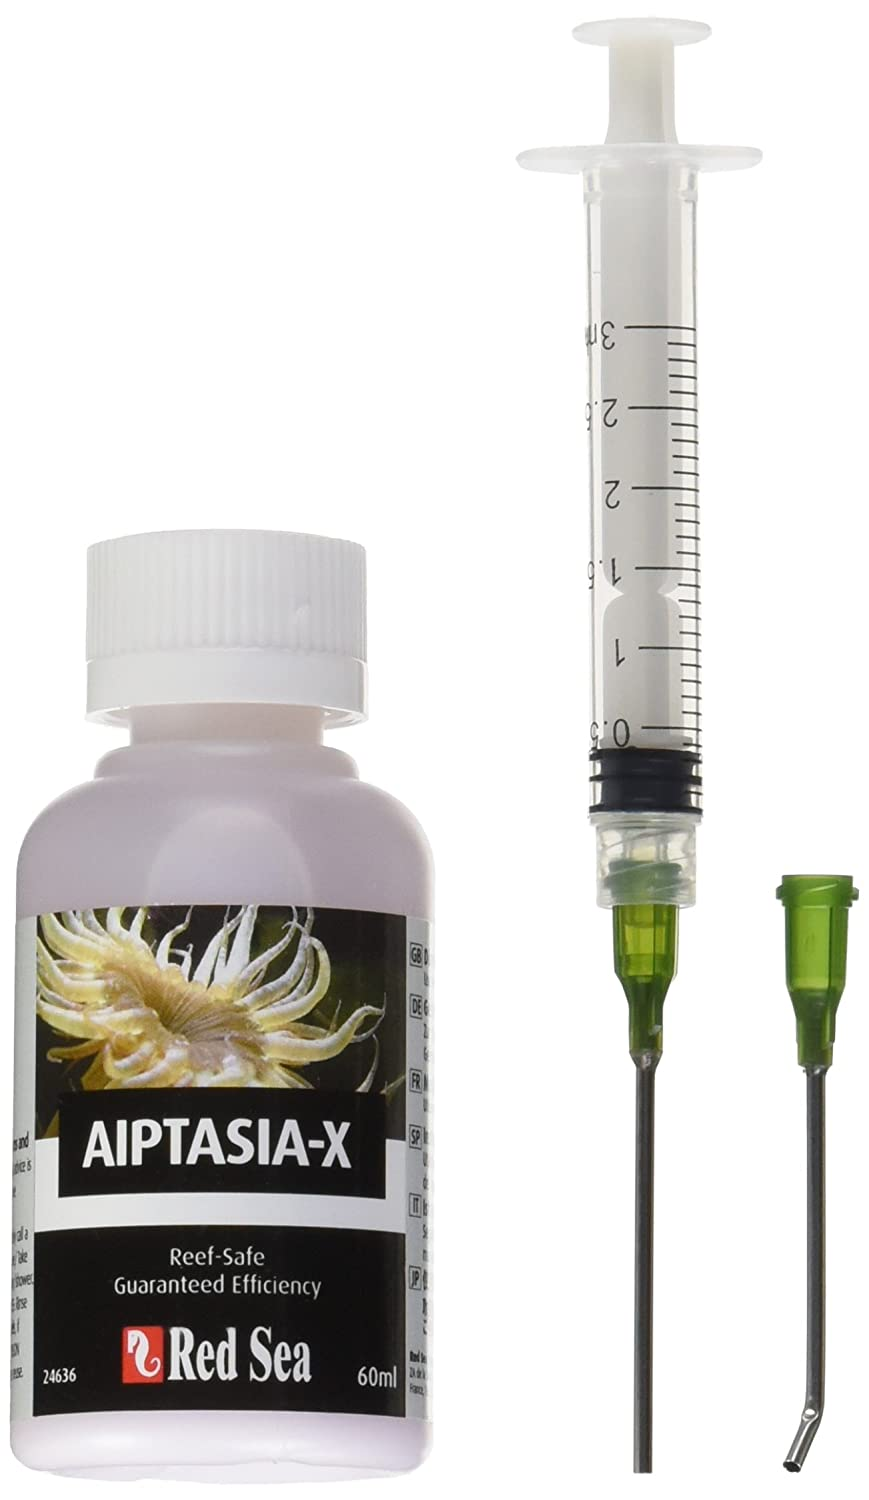 Red Sea Fish Pharm ARE22231 Aiptasia-X Eliminator Kit for Aquarium, 2.02-Ounce